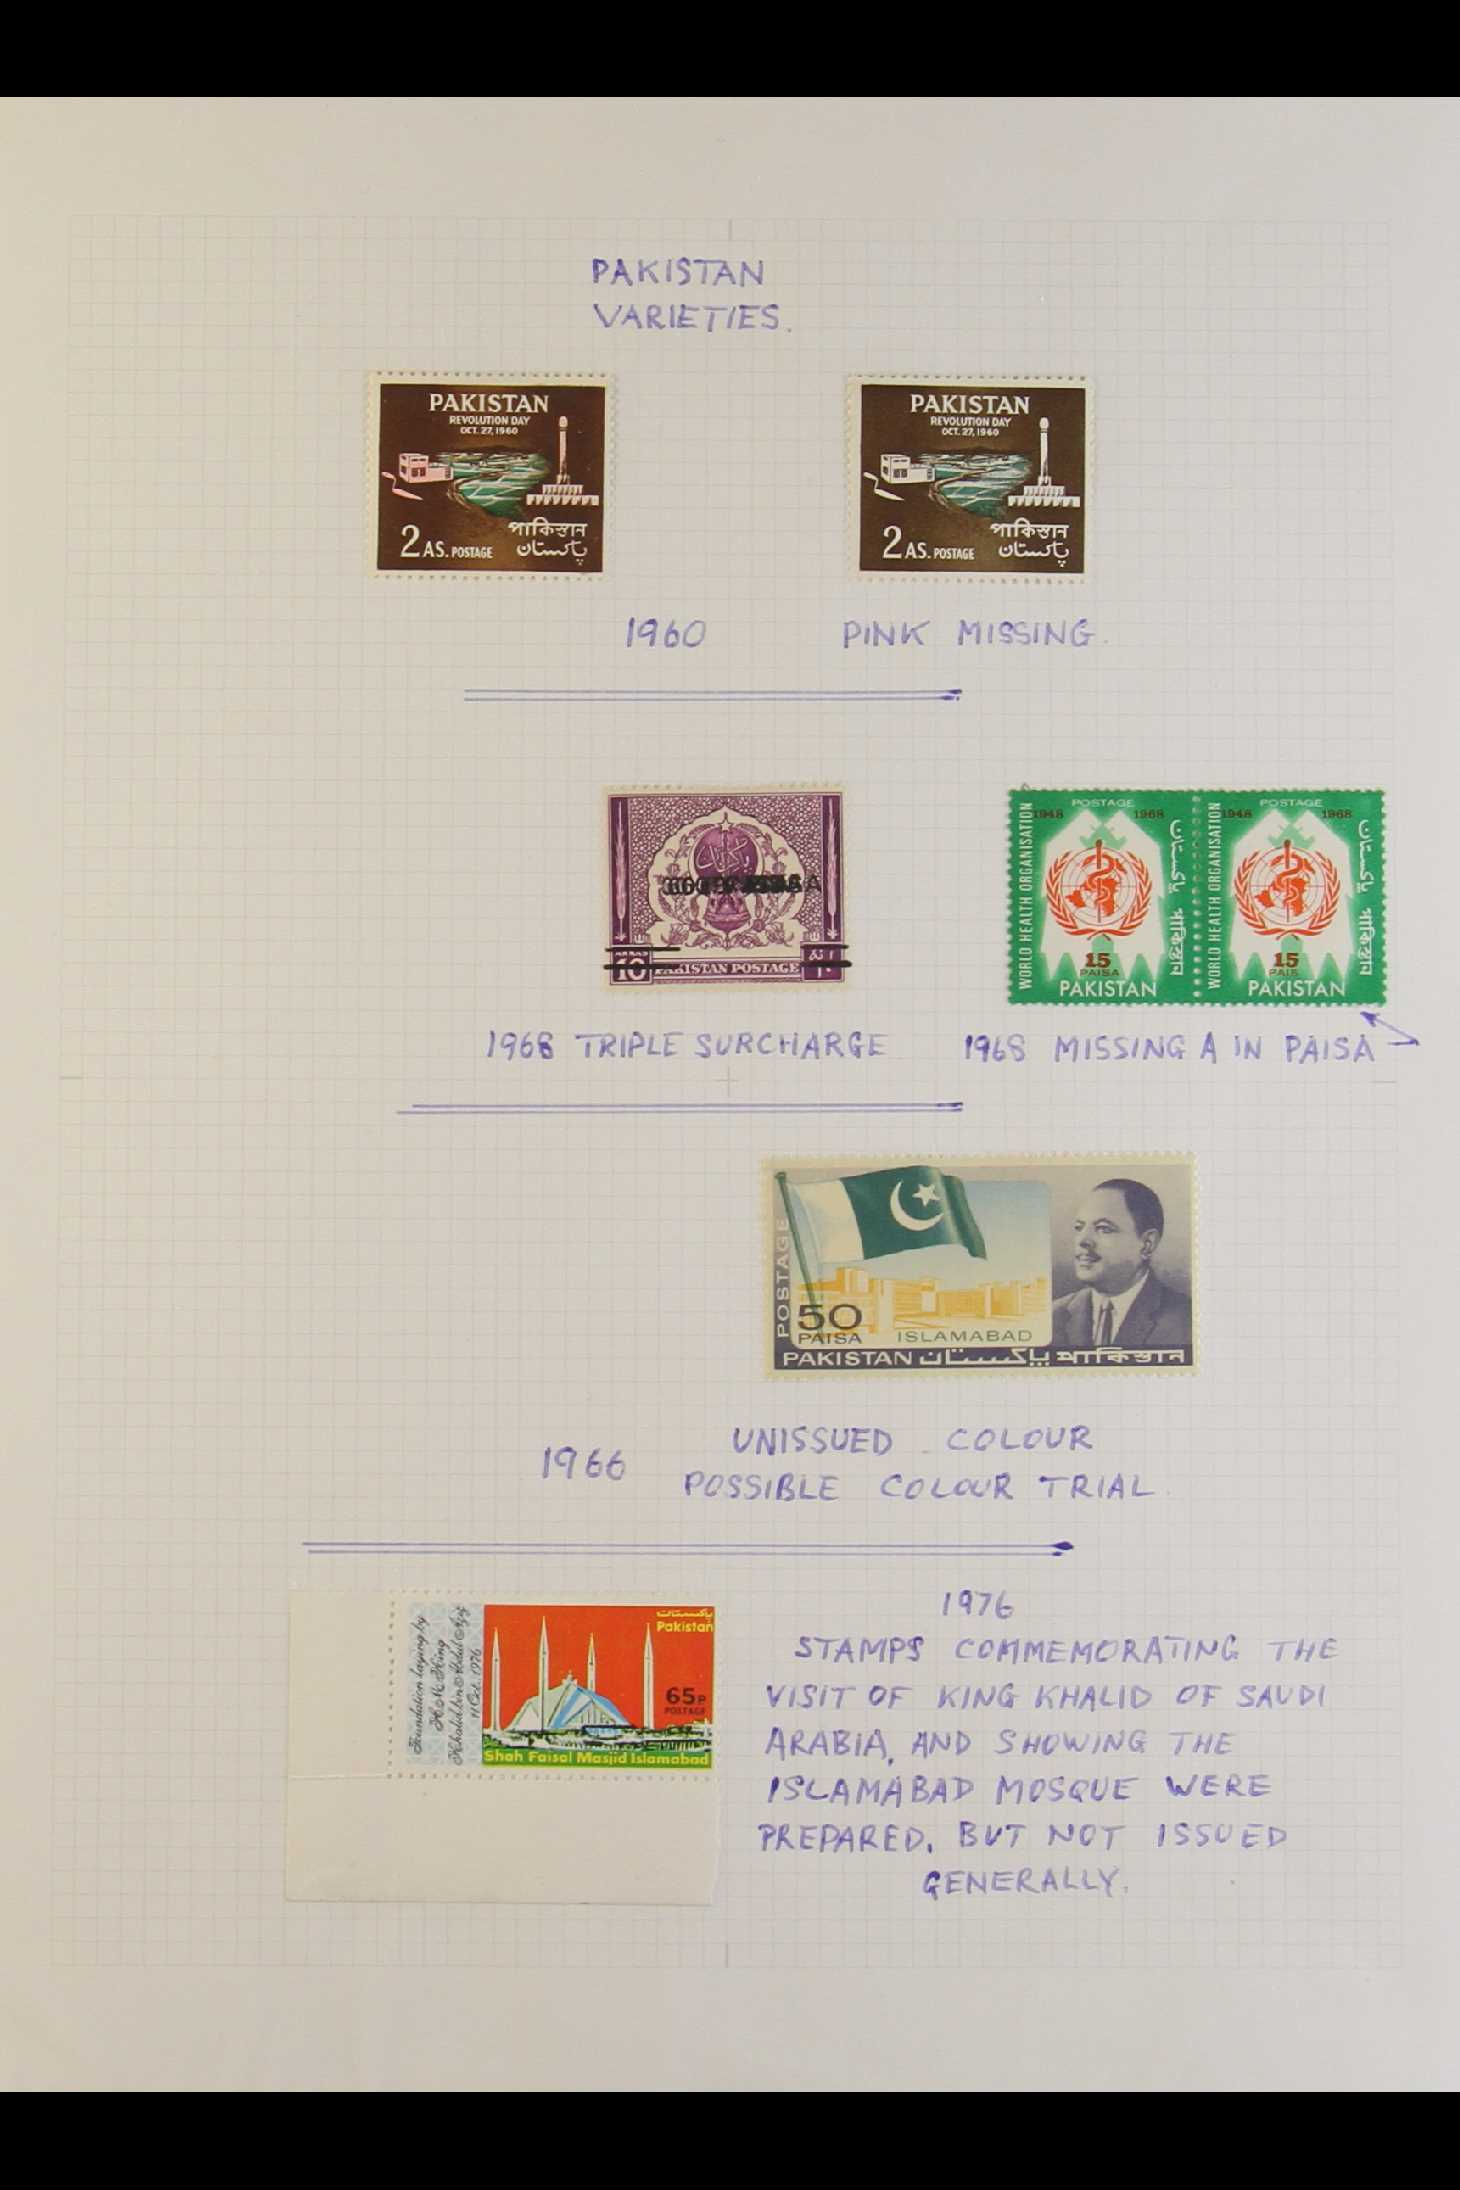 PAKISTAN 1960-2000 VARIETIES COLLECTION mint or nhm incl. 1960 Revolution Day 2a pink OMITTED, - Image 3 of 9